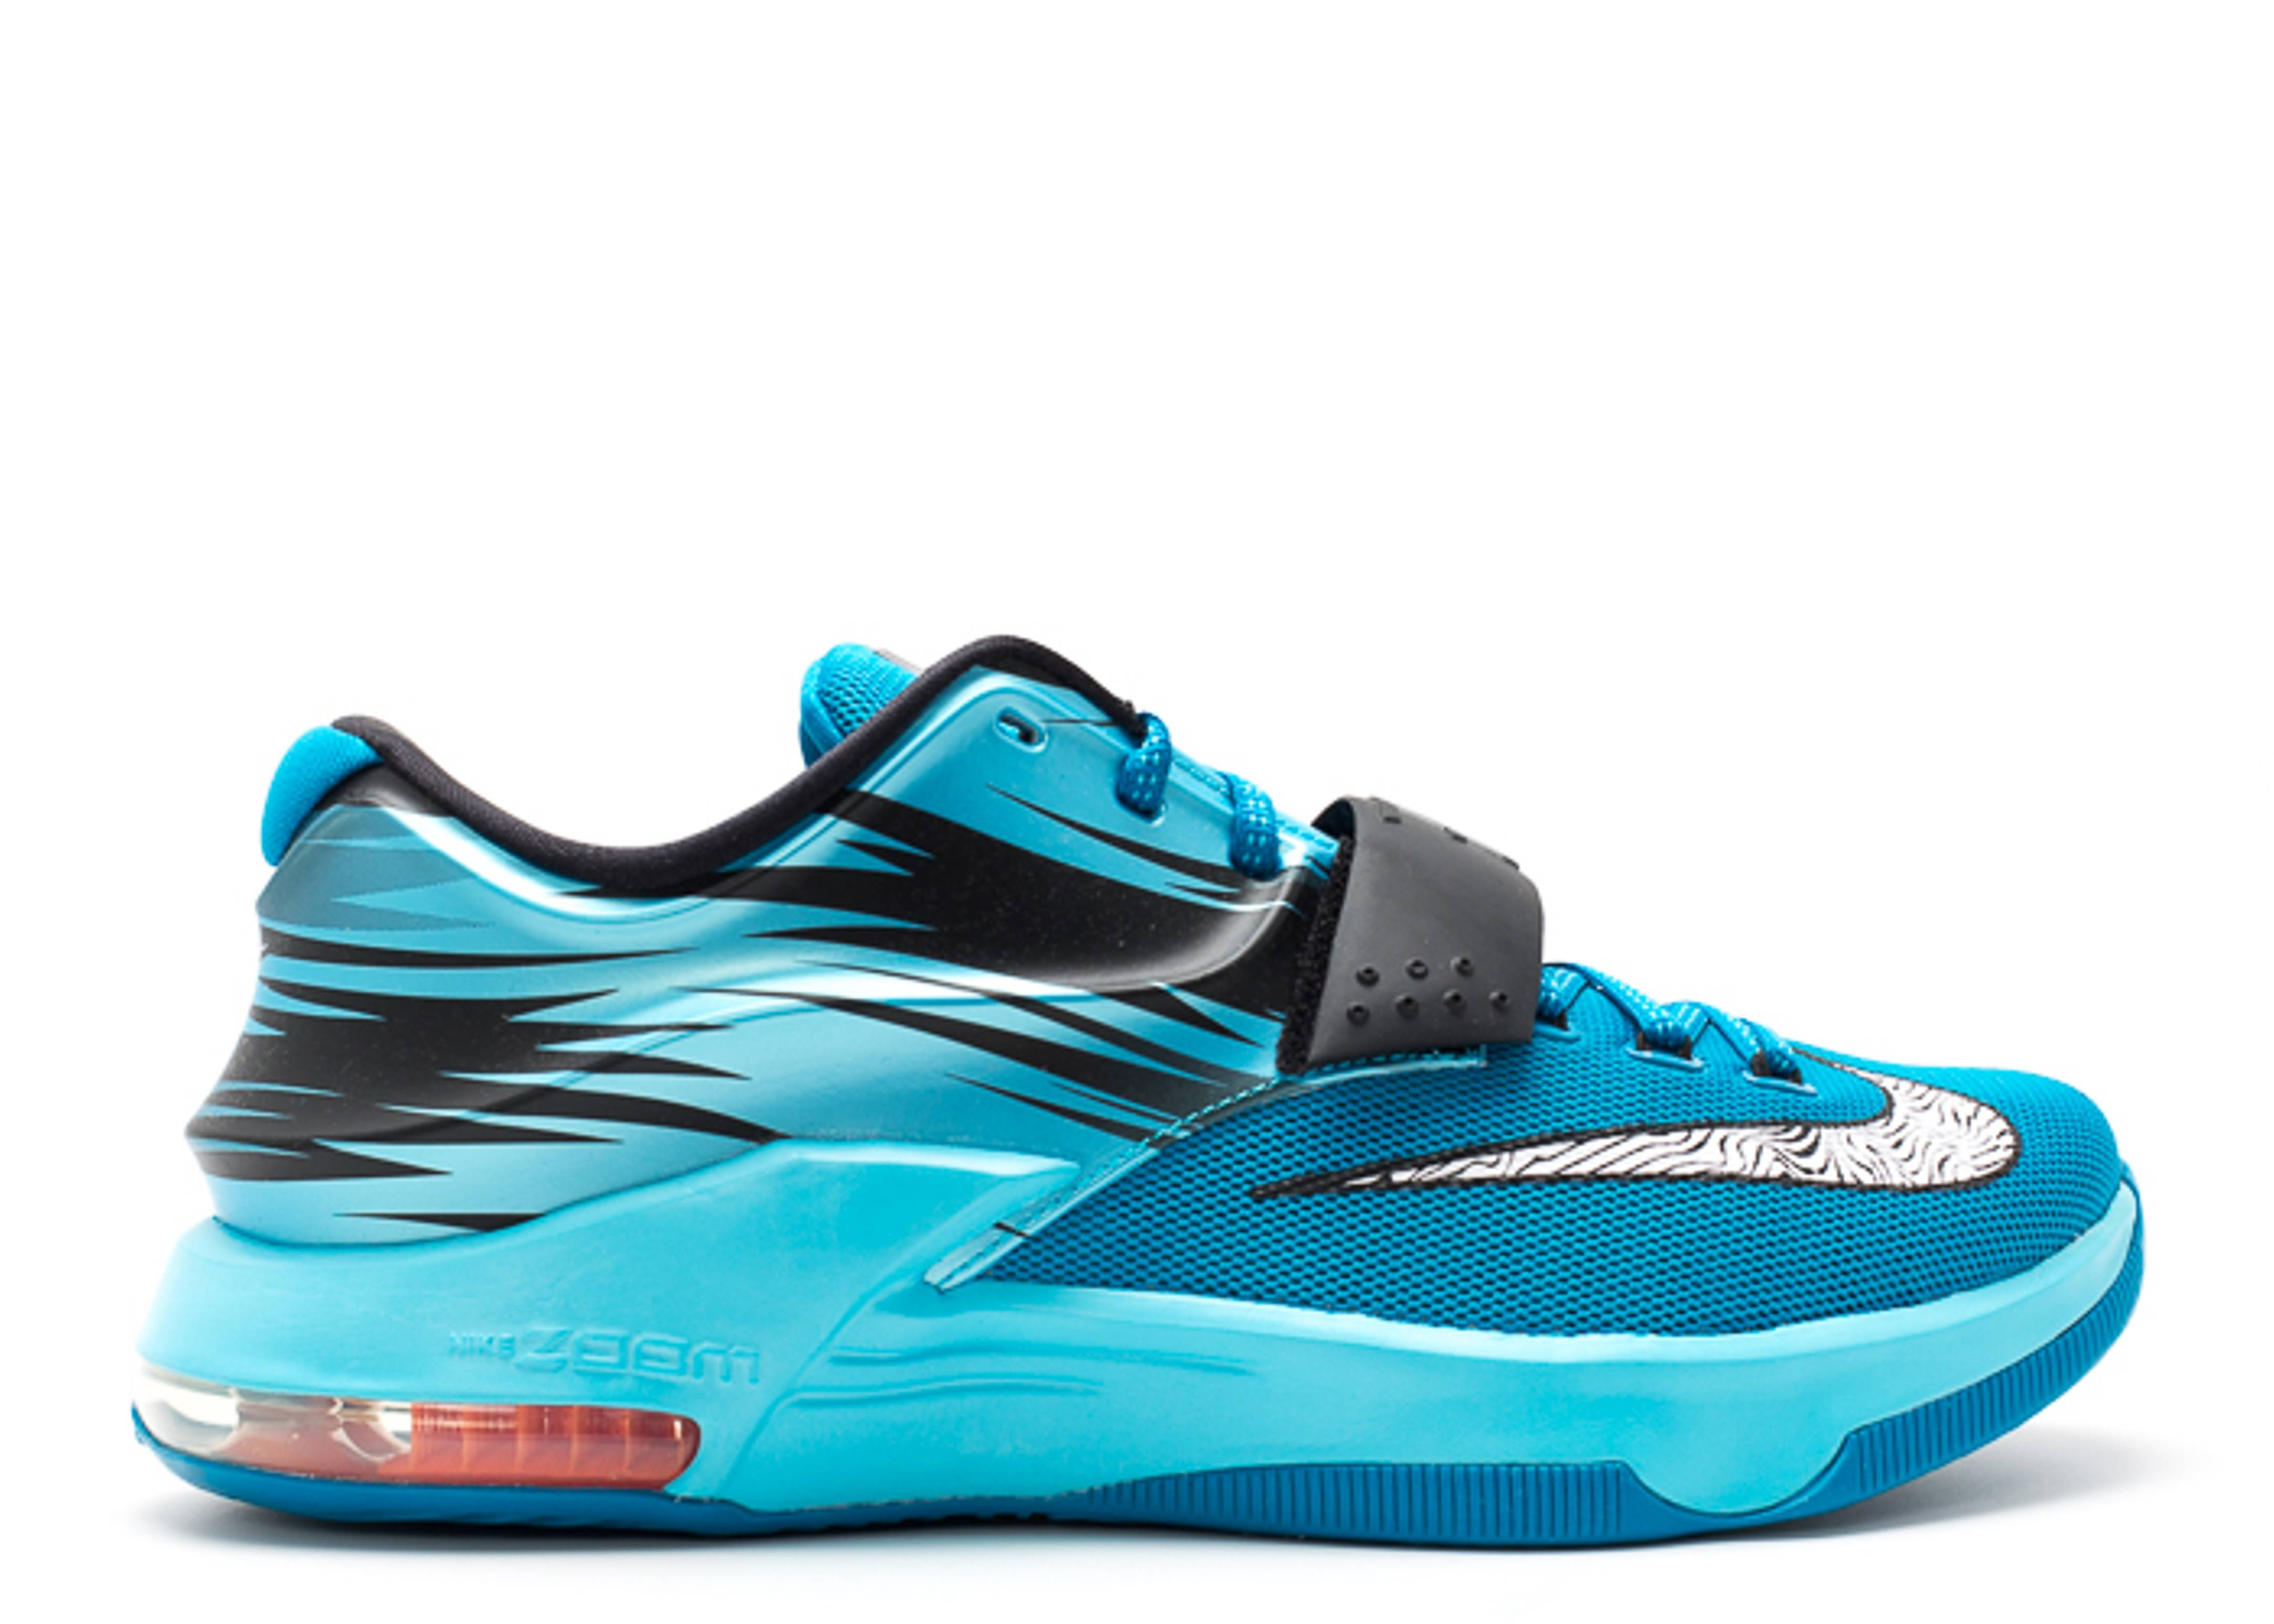 Kd 7 Quotclearwaterquot Nike 653996 414 Lt Bl Lcqr White